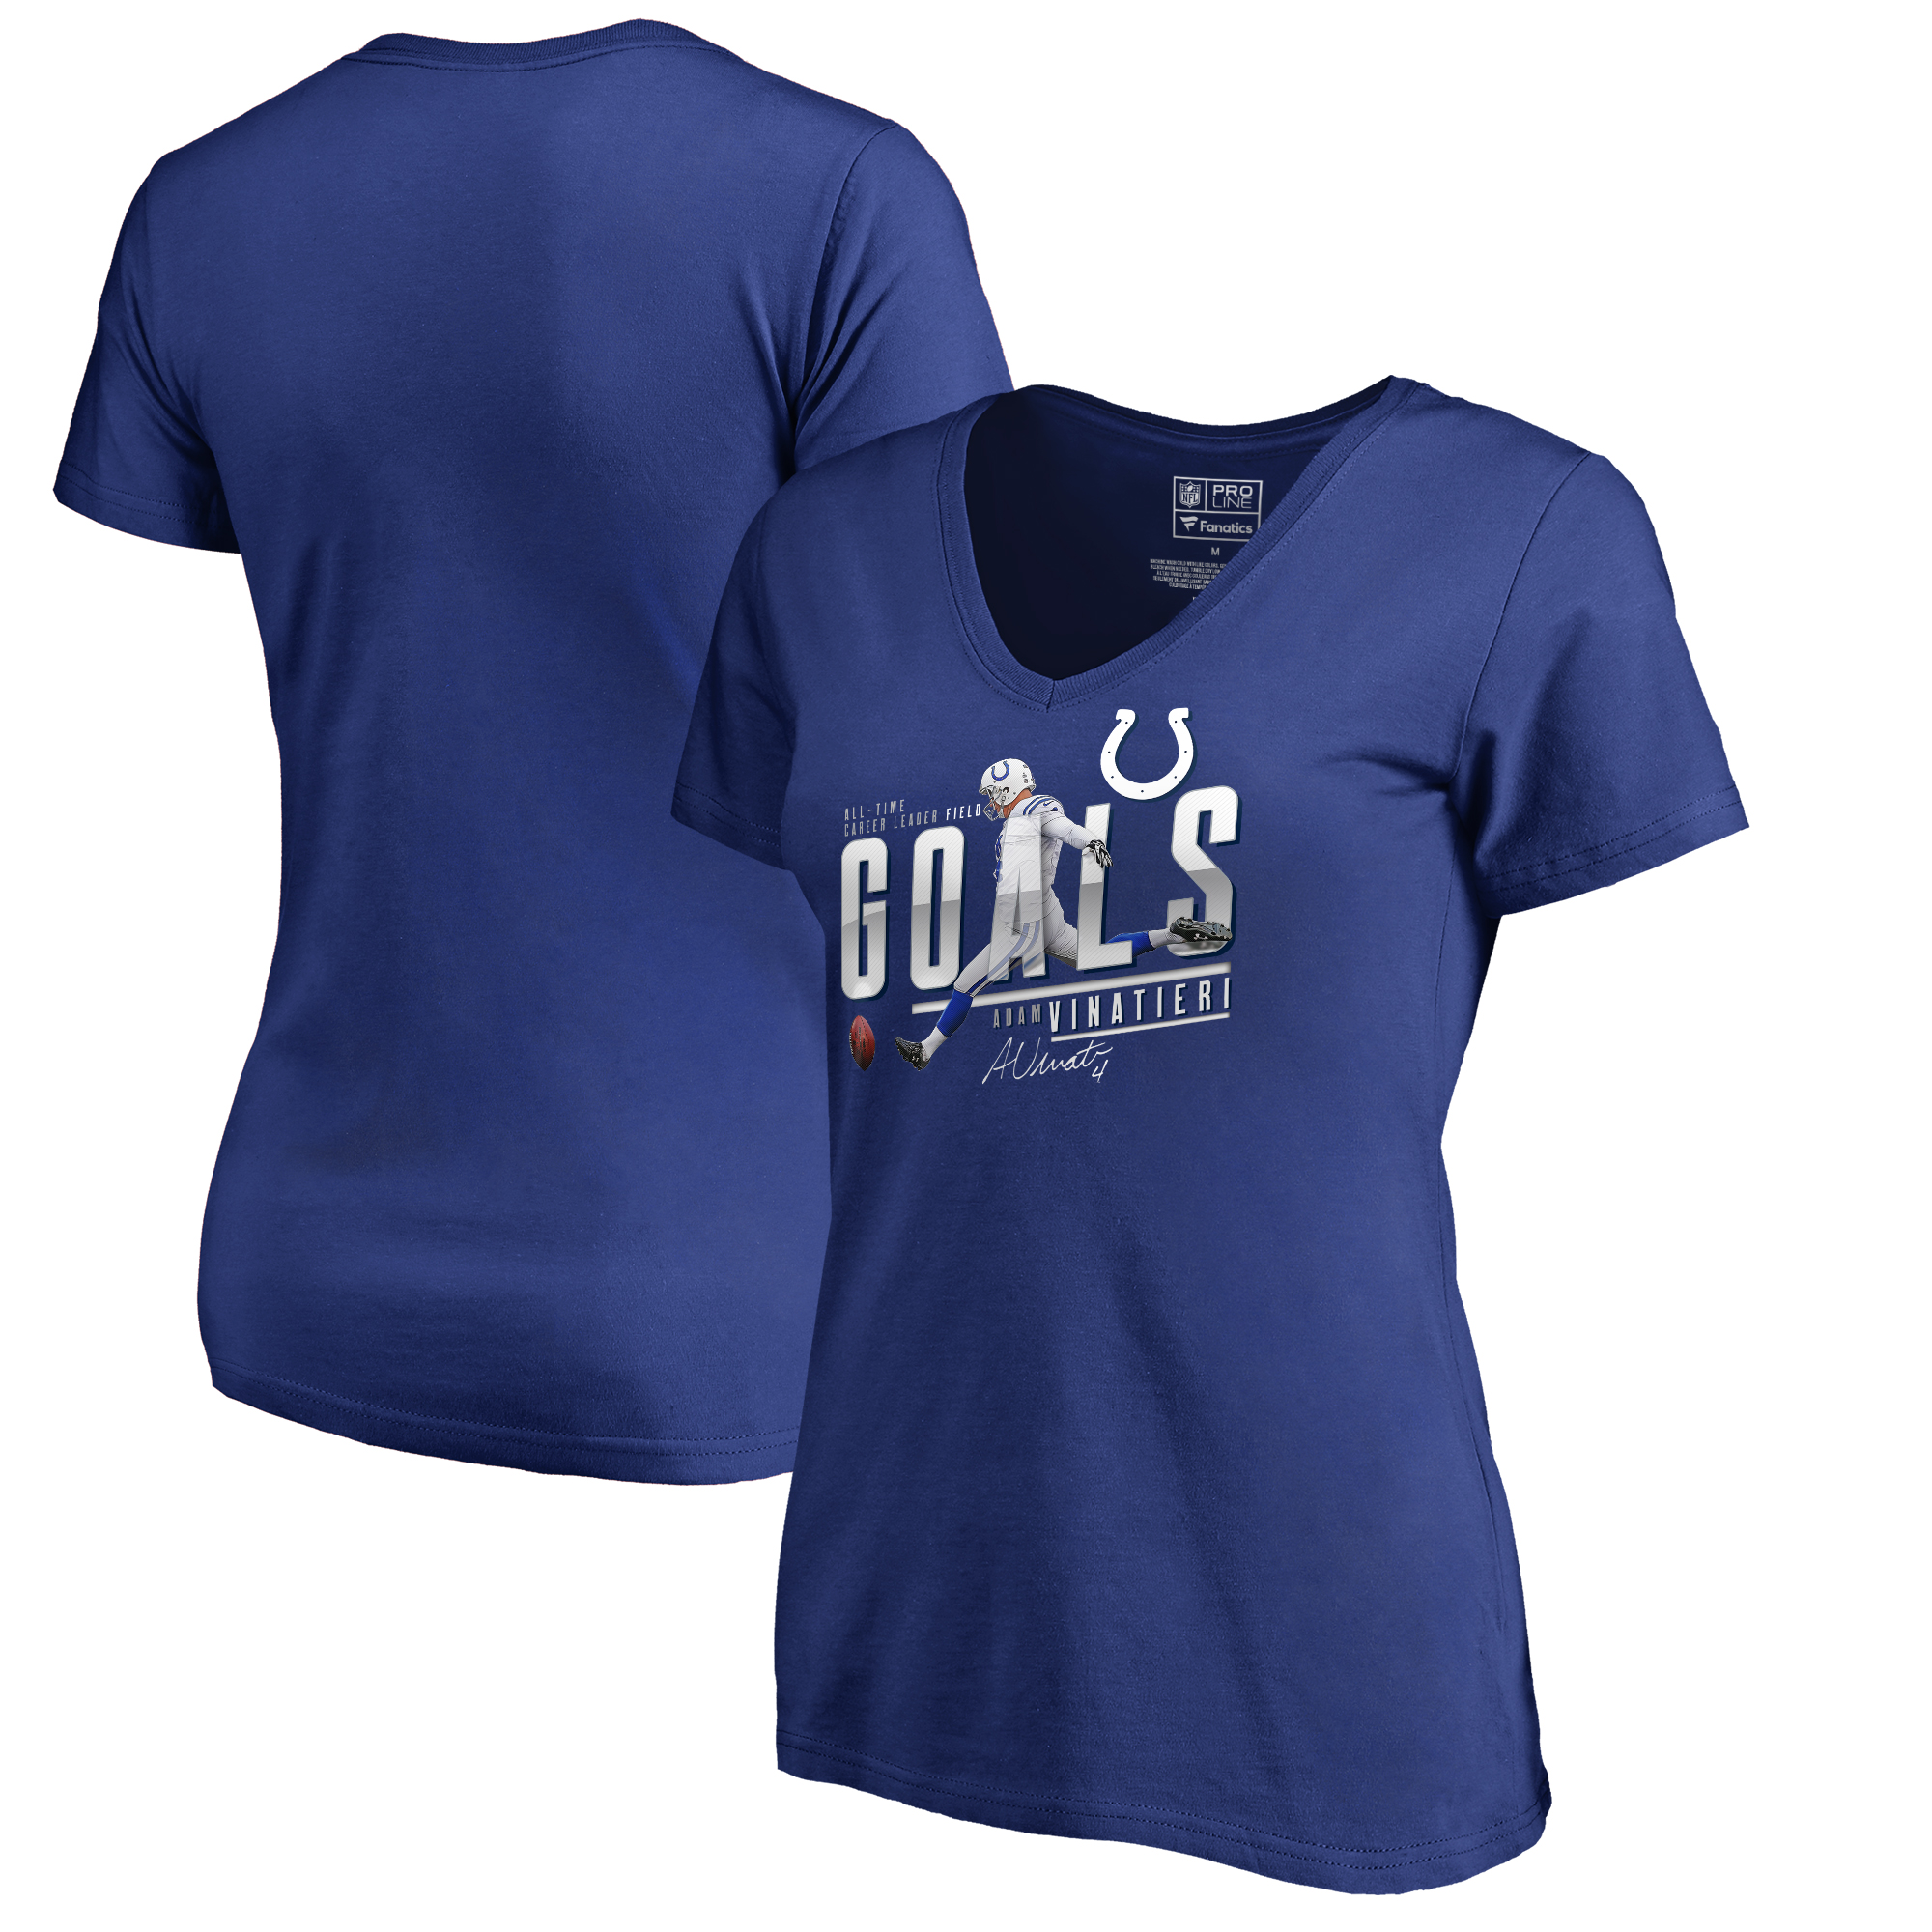 172e8912 Adam Vinatieri Indianapolis Colts NFL Pro Line by Fanatics Branded Women's  All-Time Career Leader Field Goals V-Neck T-Shirt - Royal